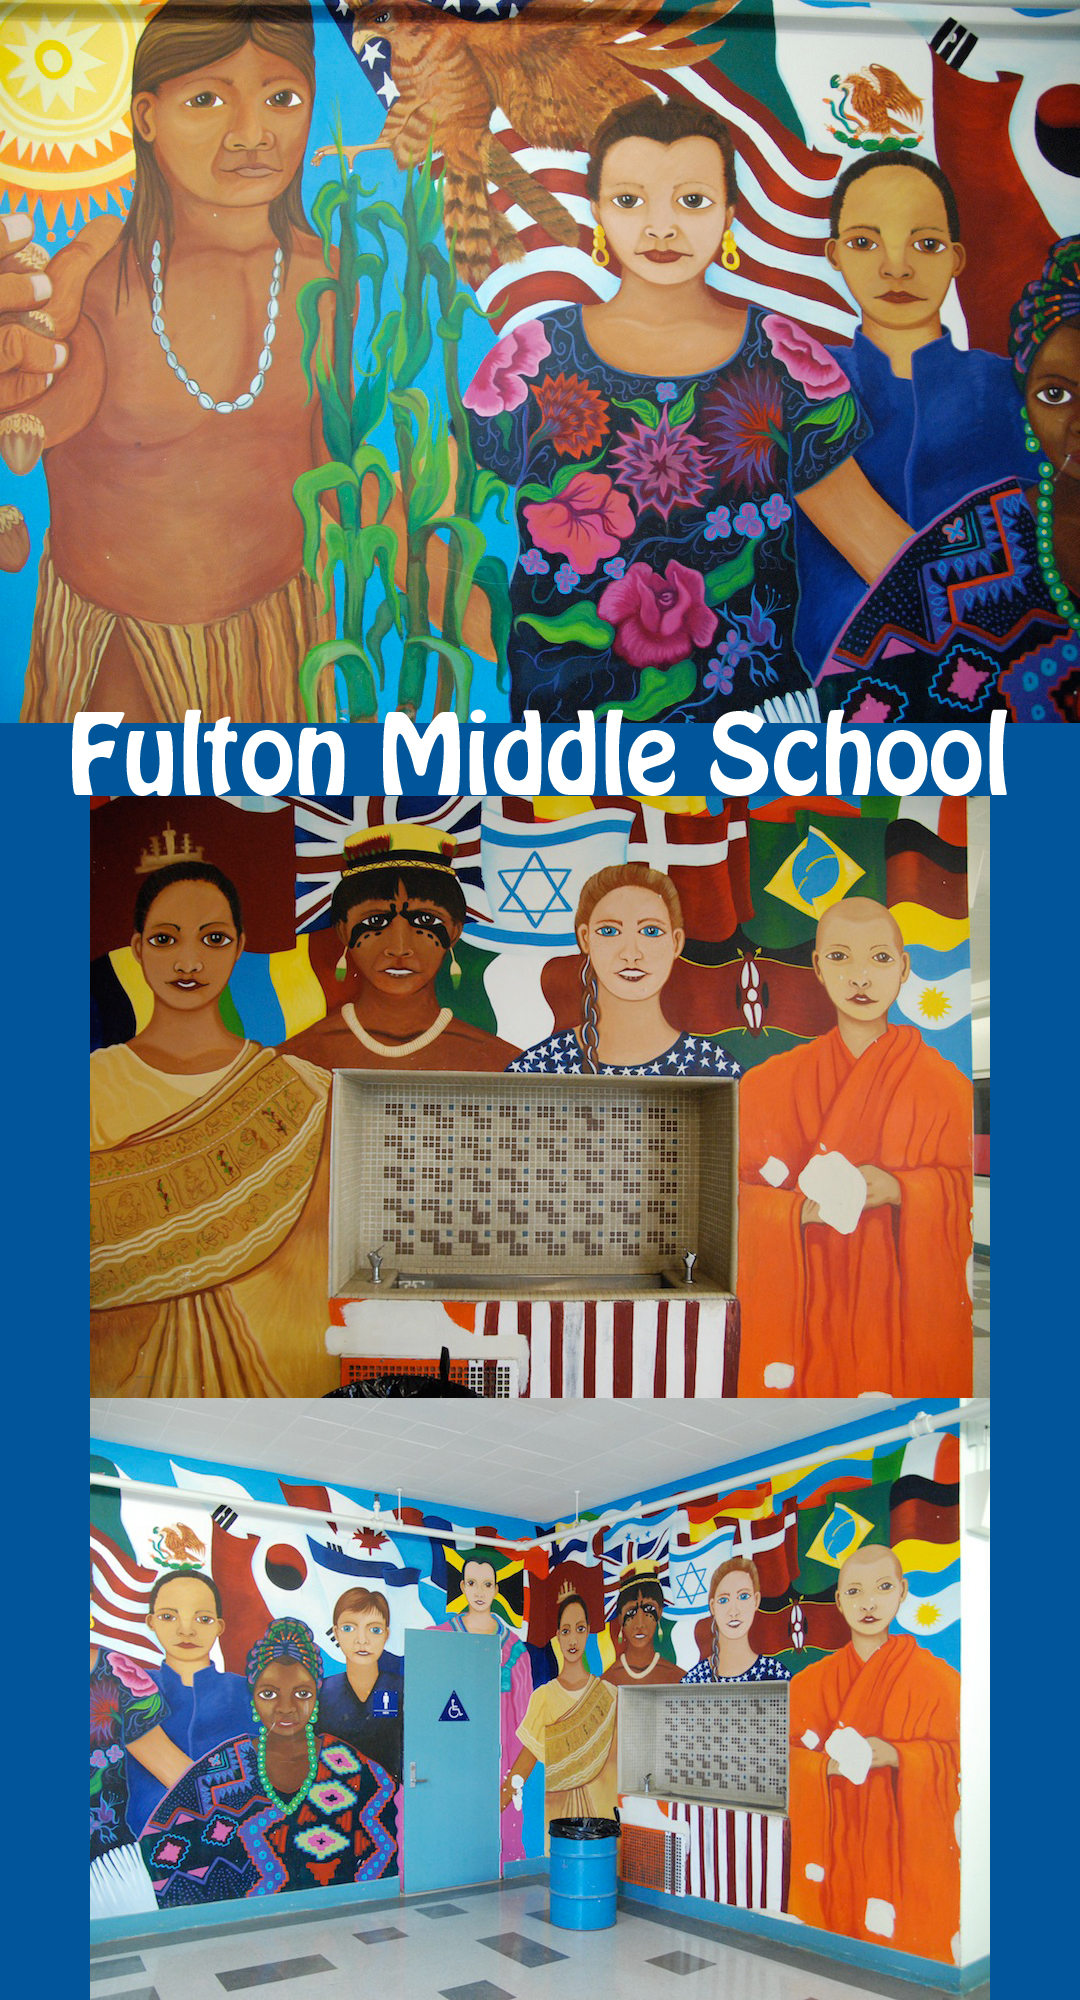 Fulton Middle School, Van Nuys, Los Angeles